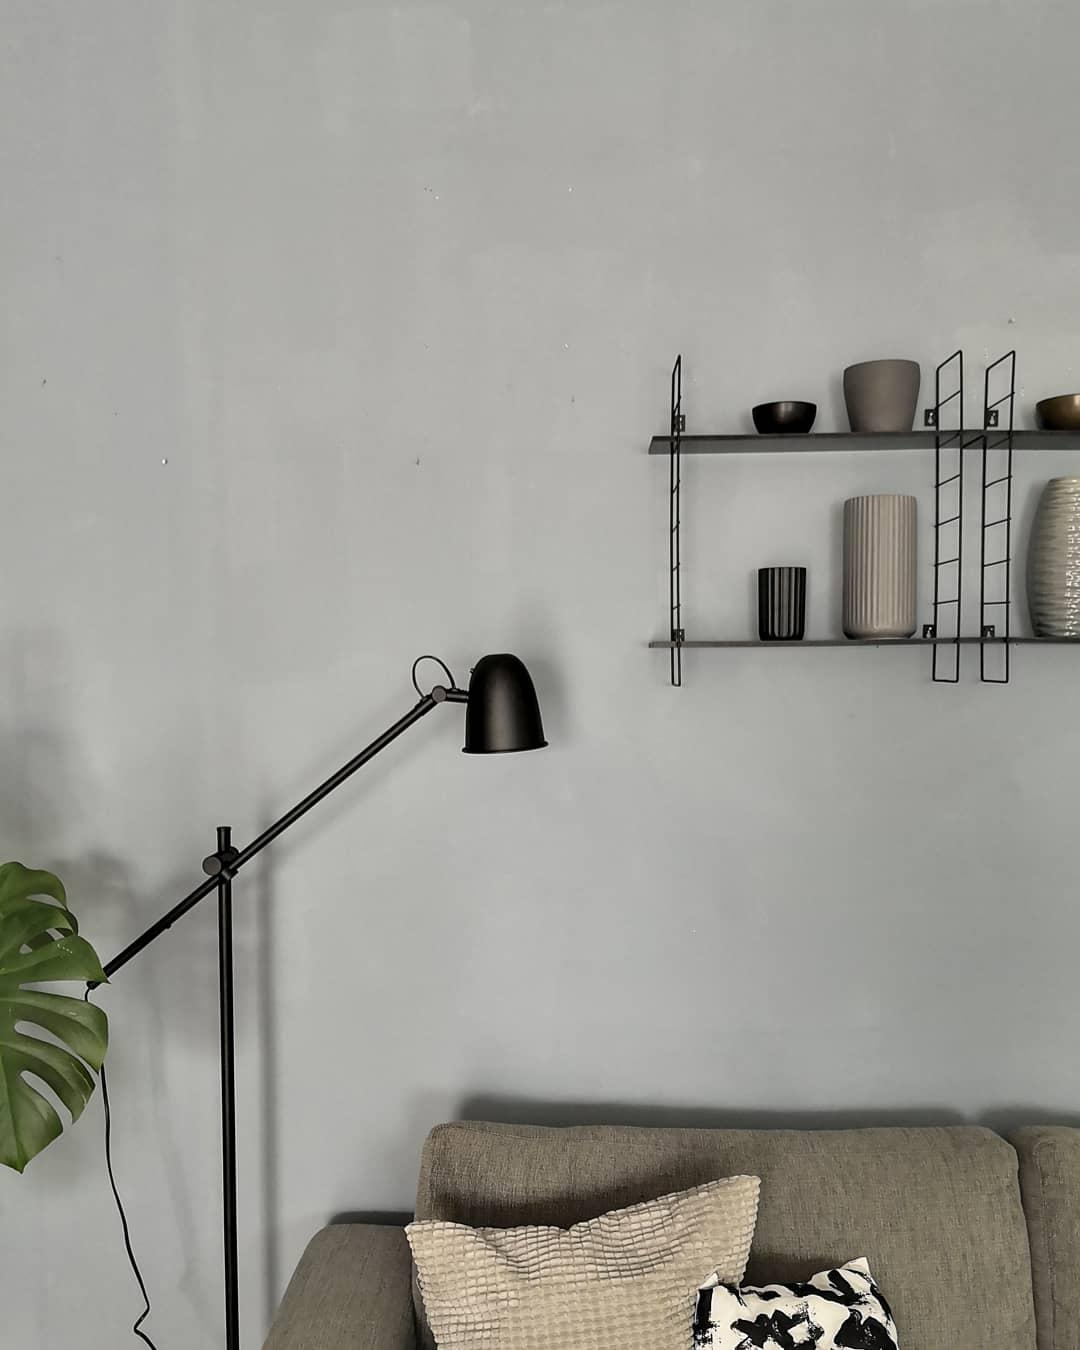 #vases #vasenliebe #shelf #lamp #couchstyle